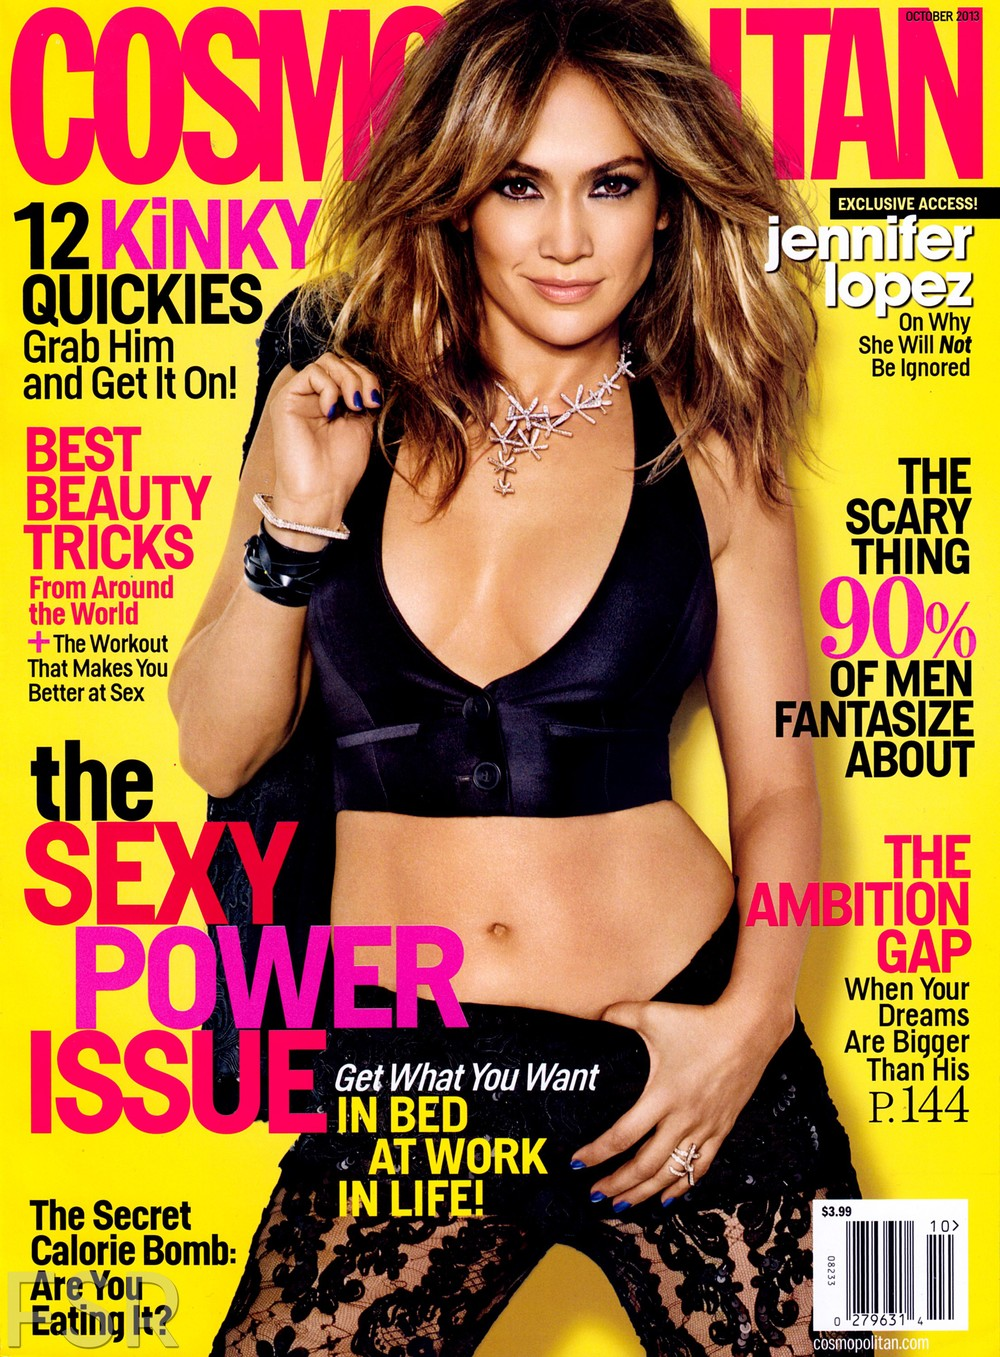 fashion_scans_remastered-jennifer_lopez-cosmopolitan_usa-october_2013-scanned_by_vampirehorde-hq-1.jpg